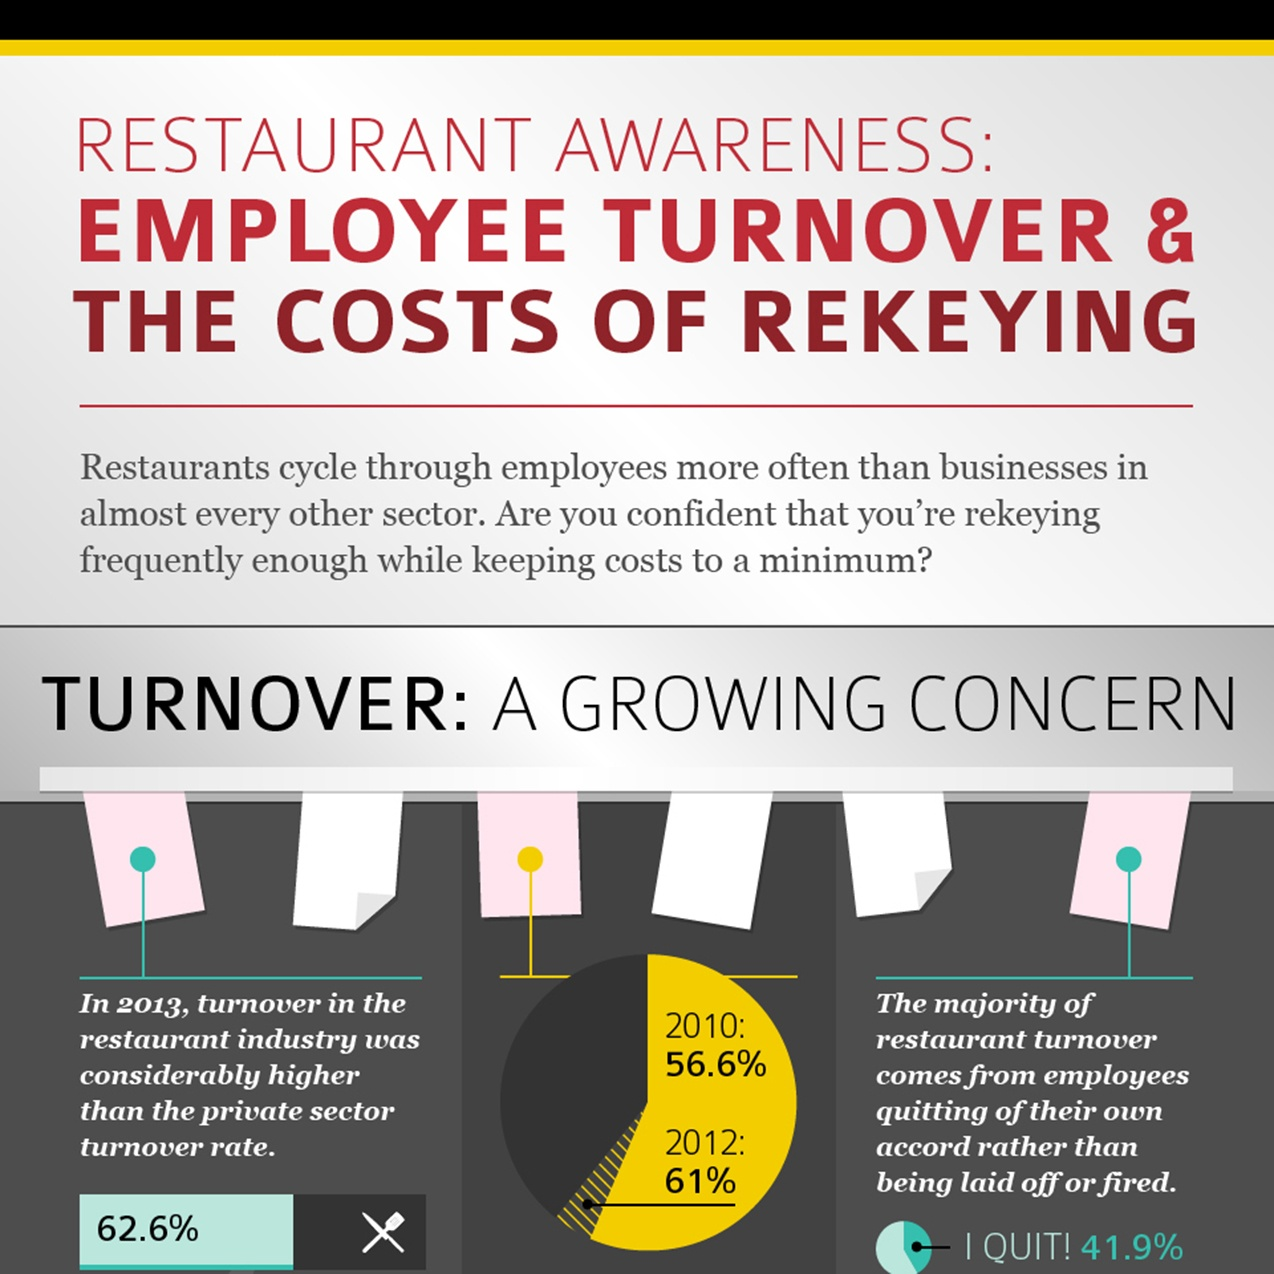 Turnover vs. the Cost of Rekeying in Restaurants